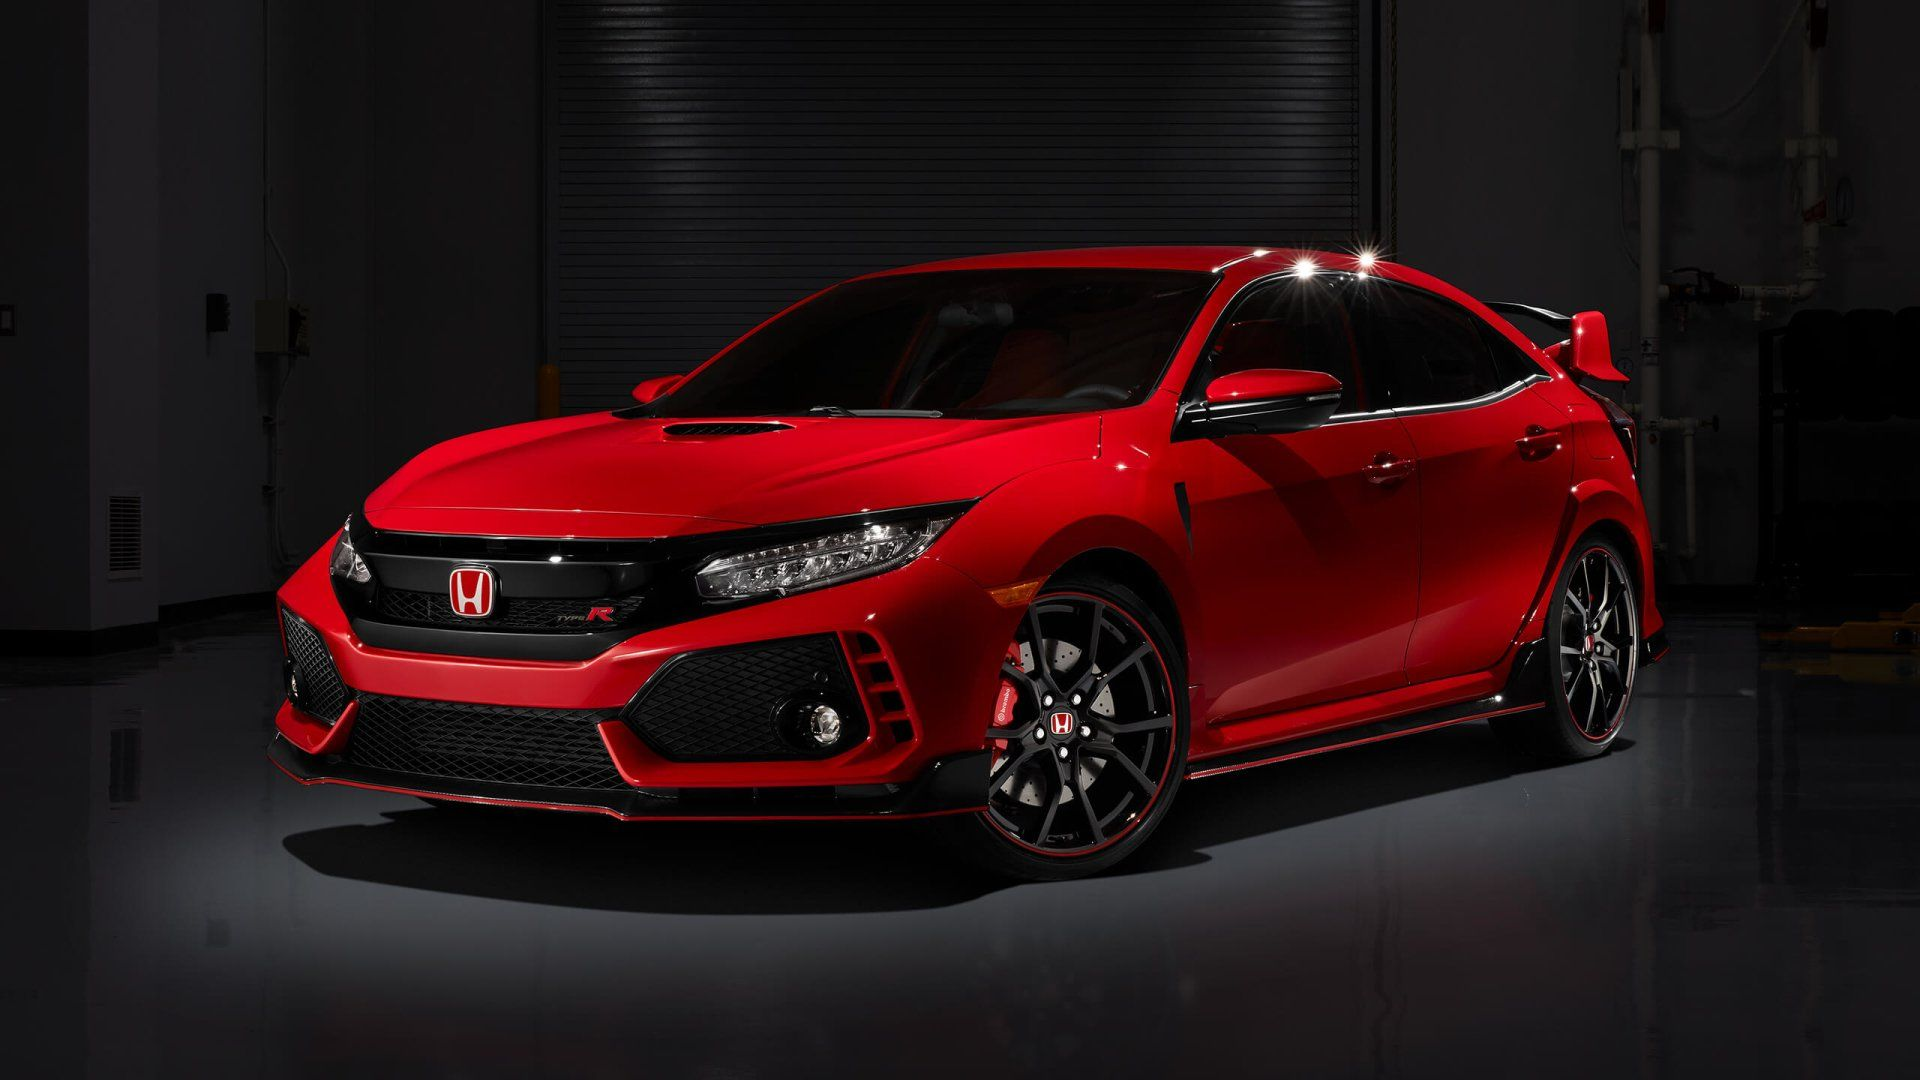 28 Honda Civic Type R Hd Wallpapers And Background Images Download For Free On All Your Devices Computer Smartp Honda Civic Type R Honda Civic Honda Type R